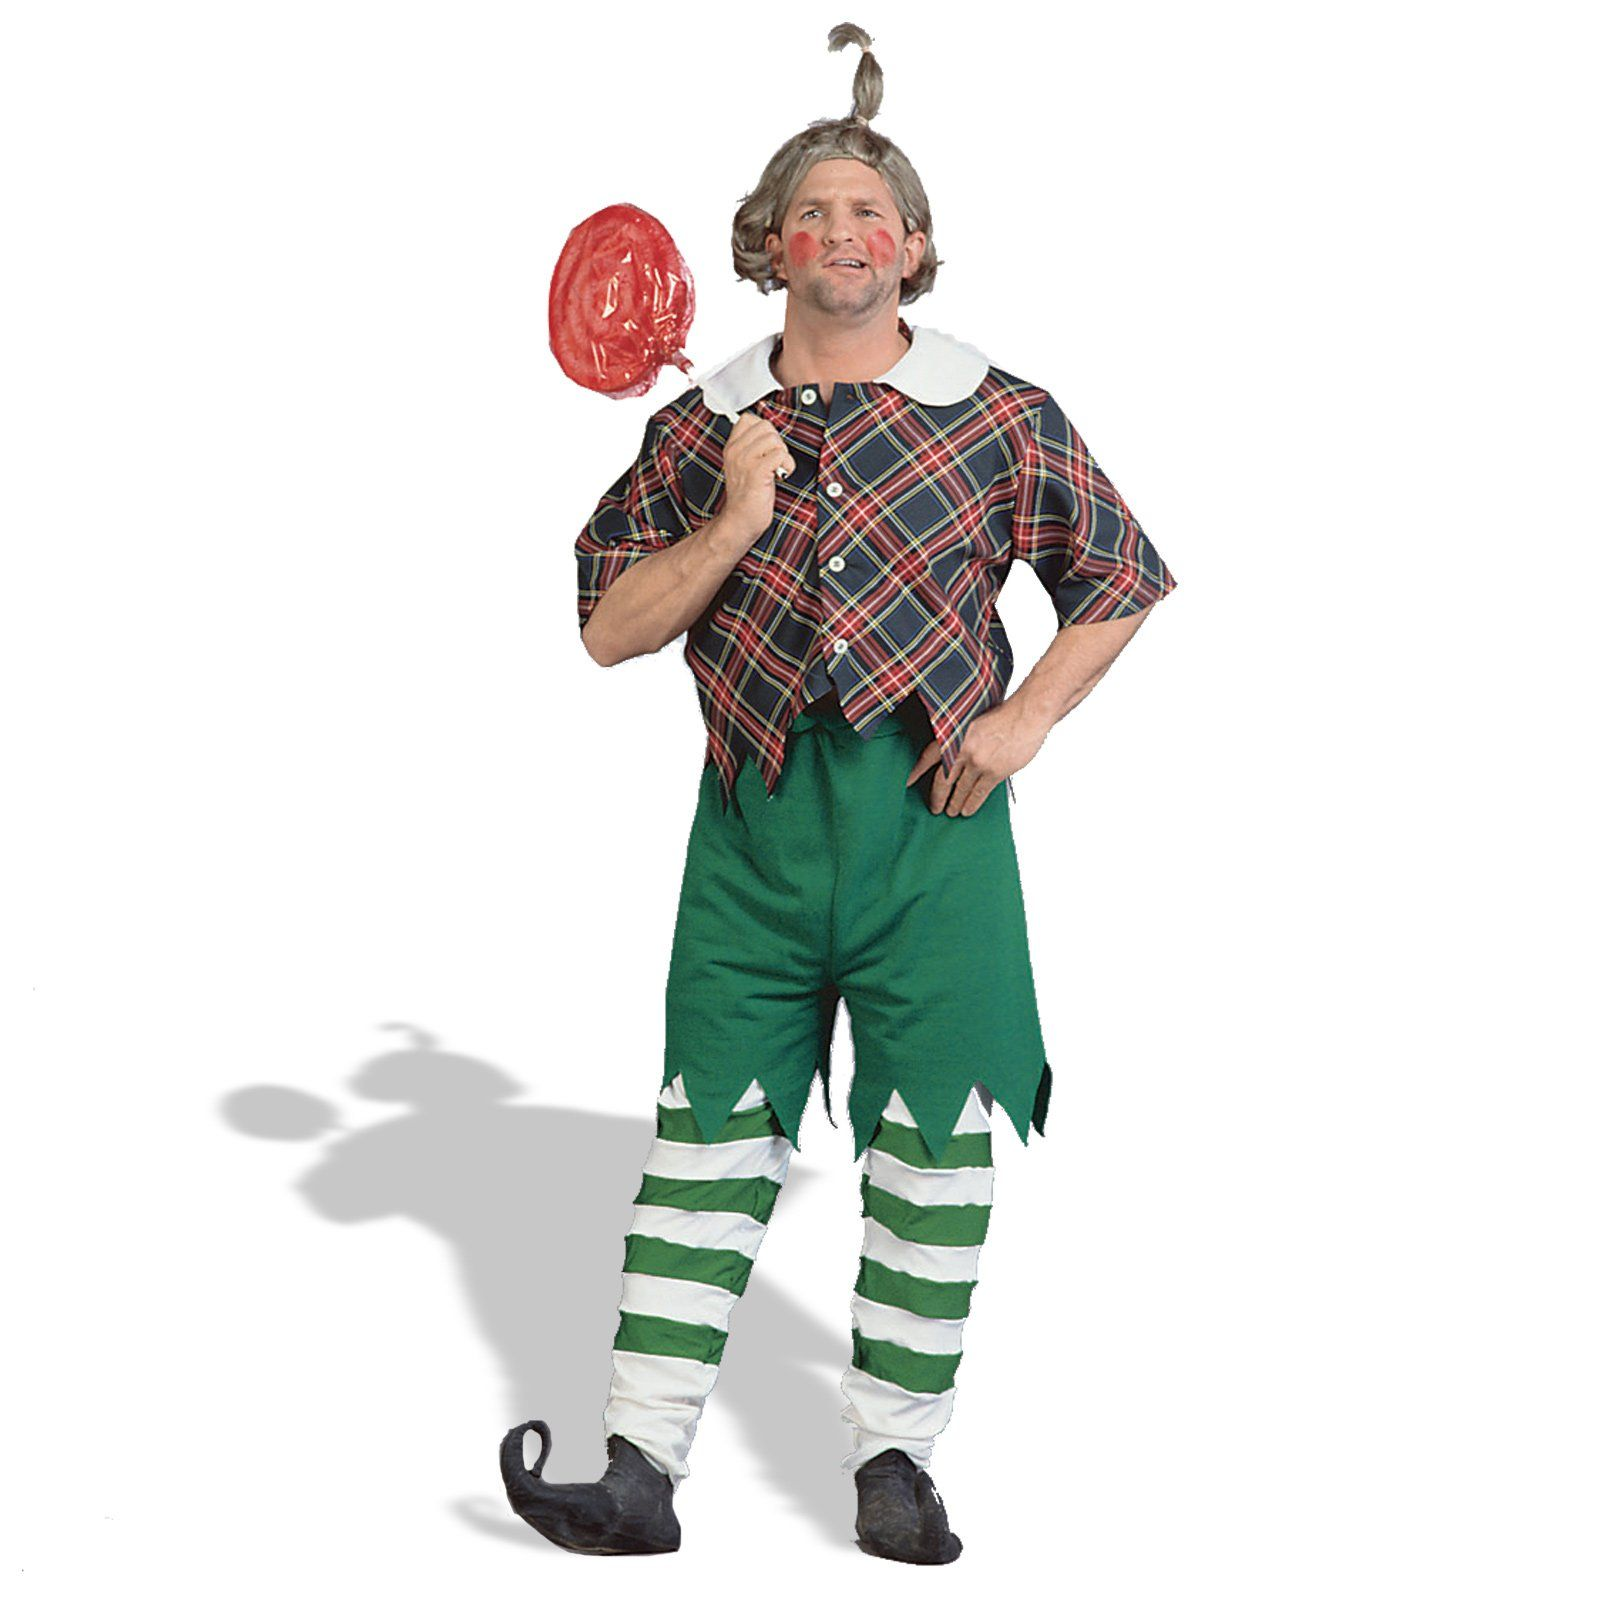 Munchkin Kid Adult Costume | Costumes and Halloween costumes